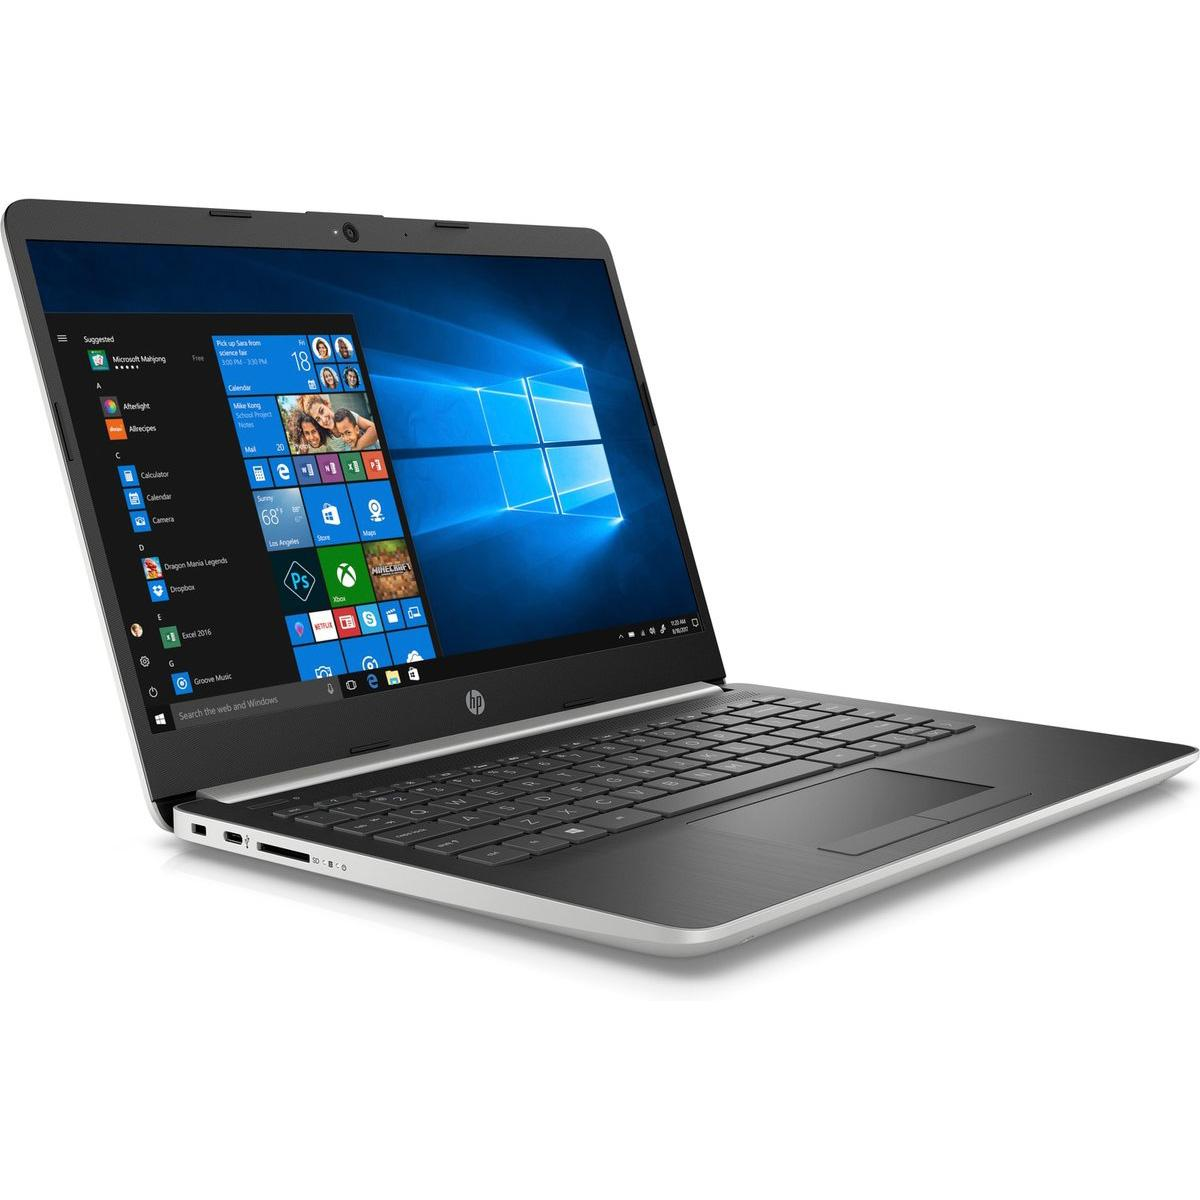 HP 14in i3 4GB 128GB Notebook Laptop